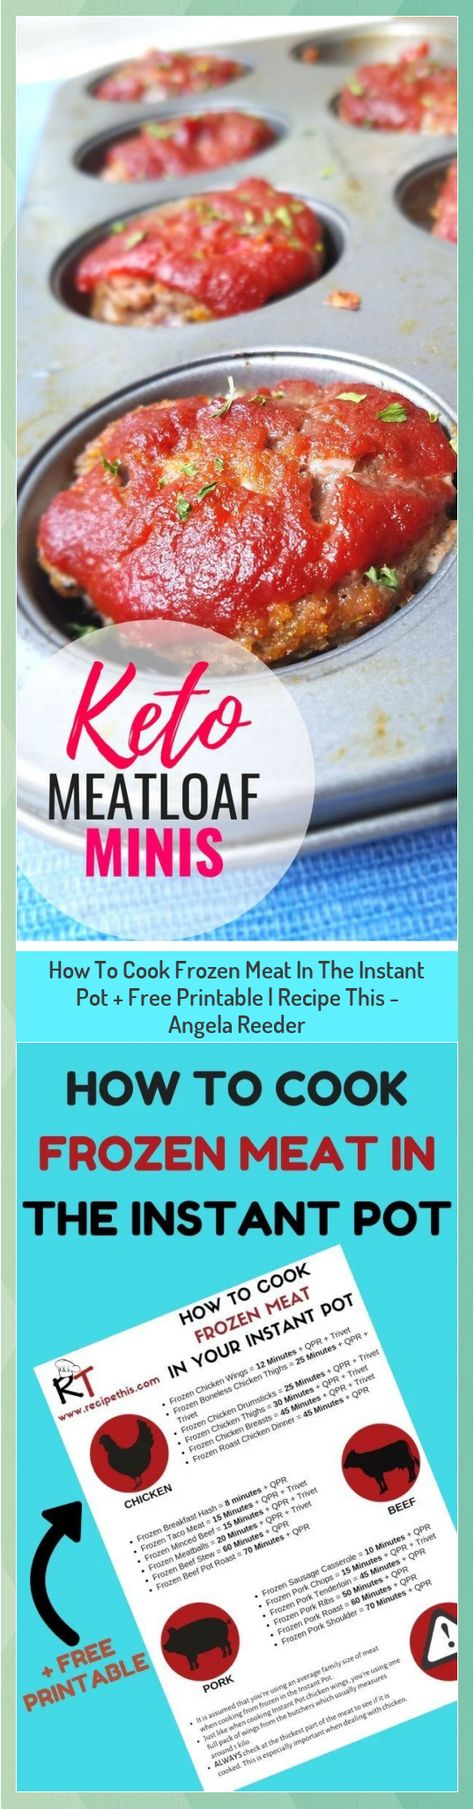 How To Cook Frozen Meat In The Instant Pot + Free Printable   Recipe This - Angela Reeder #Angela #Cook #Free #Frozen #Instant #Meat #Pot #Printable #Recipe #Reeder